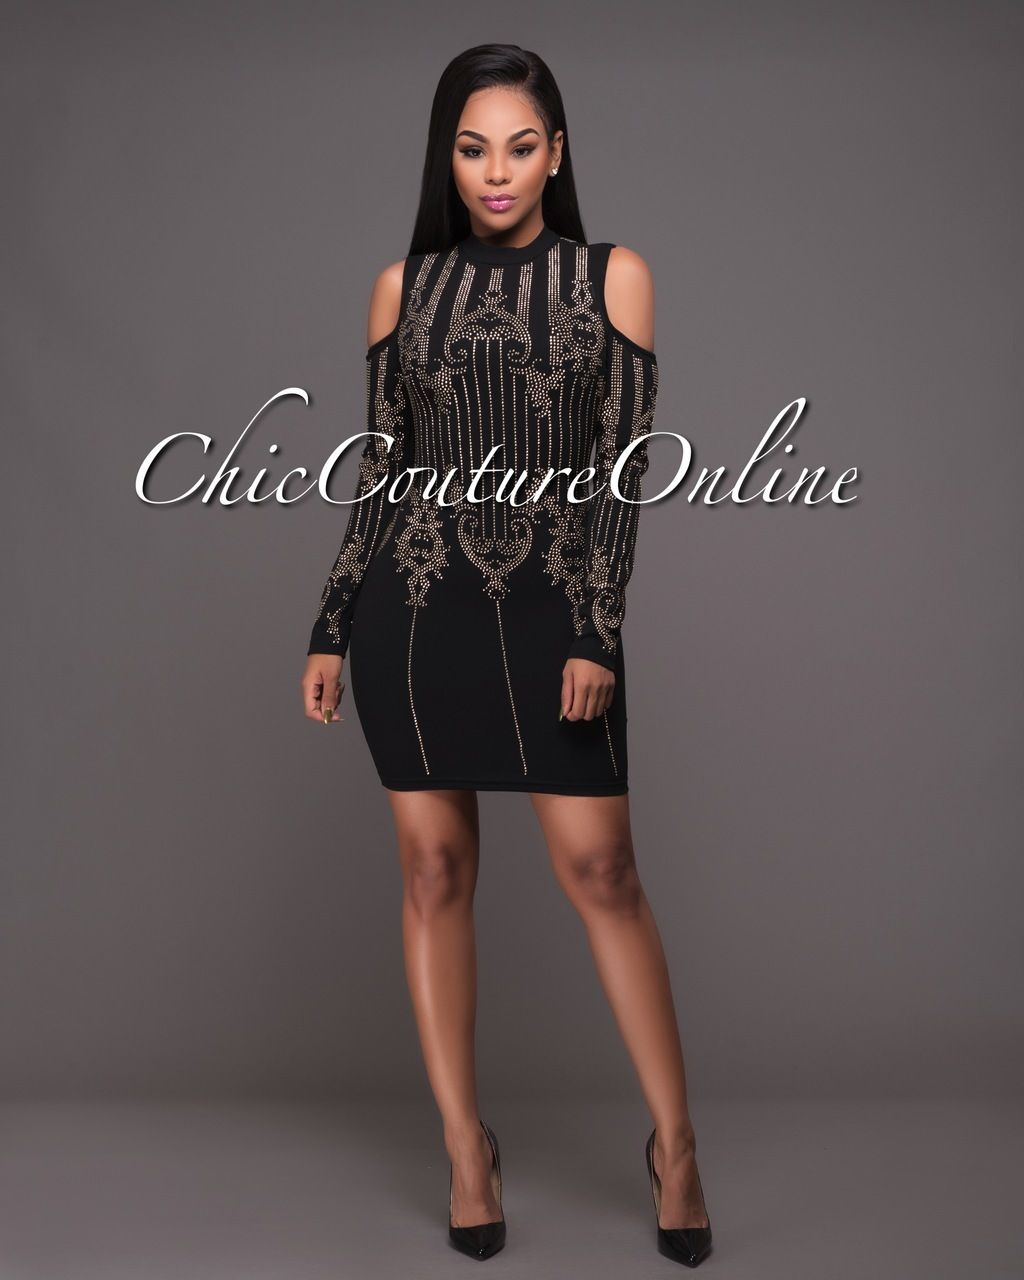 Chic couture online pembroke black gold studded long sleeves dress